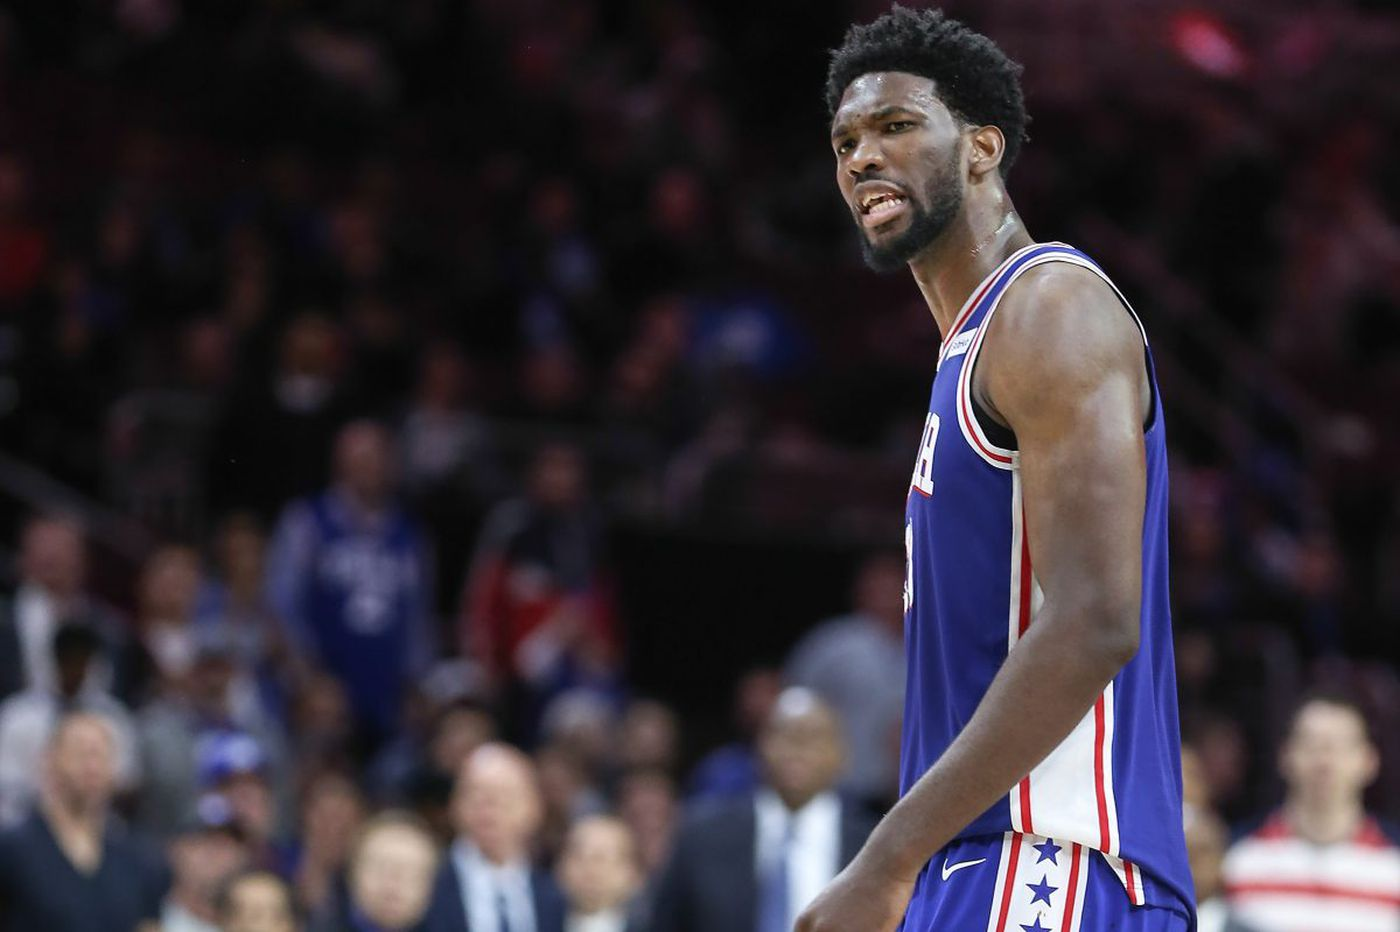 Joel Embiid's status vs. Detroit Pistons is unknown, but if he wants to play, he will